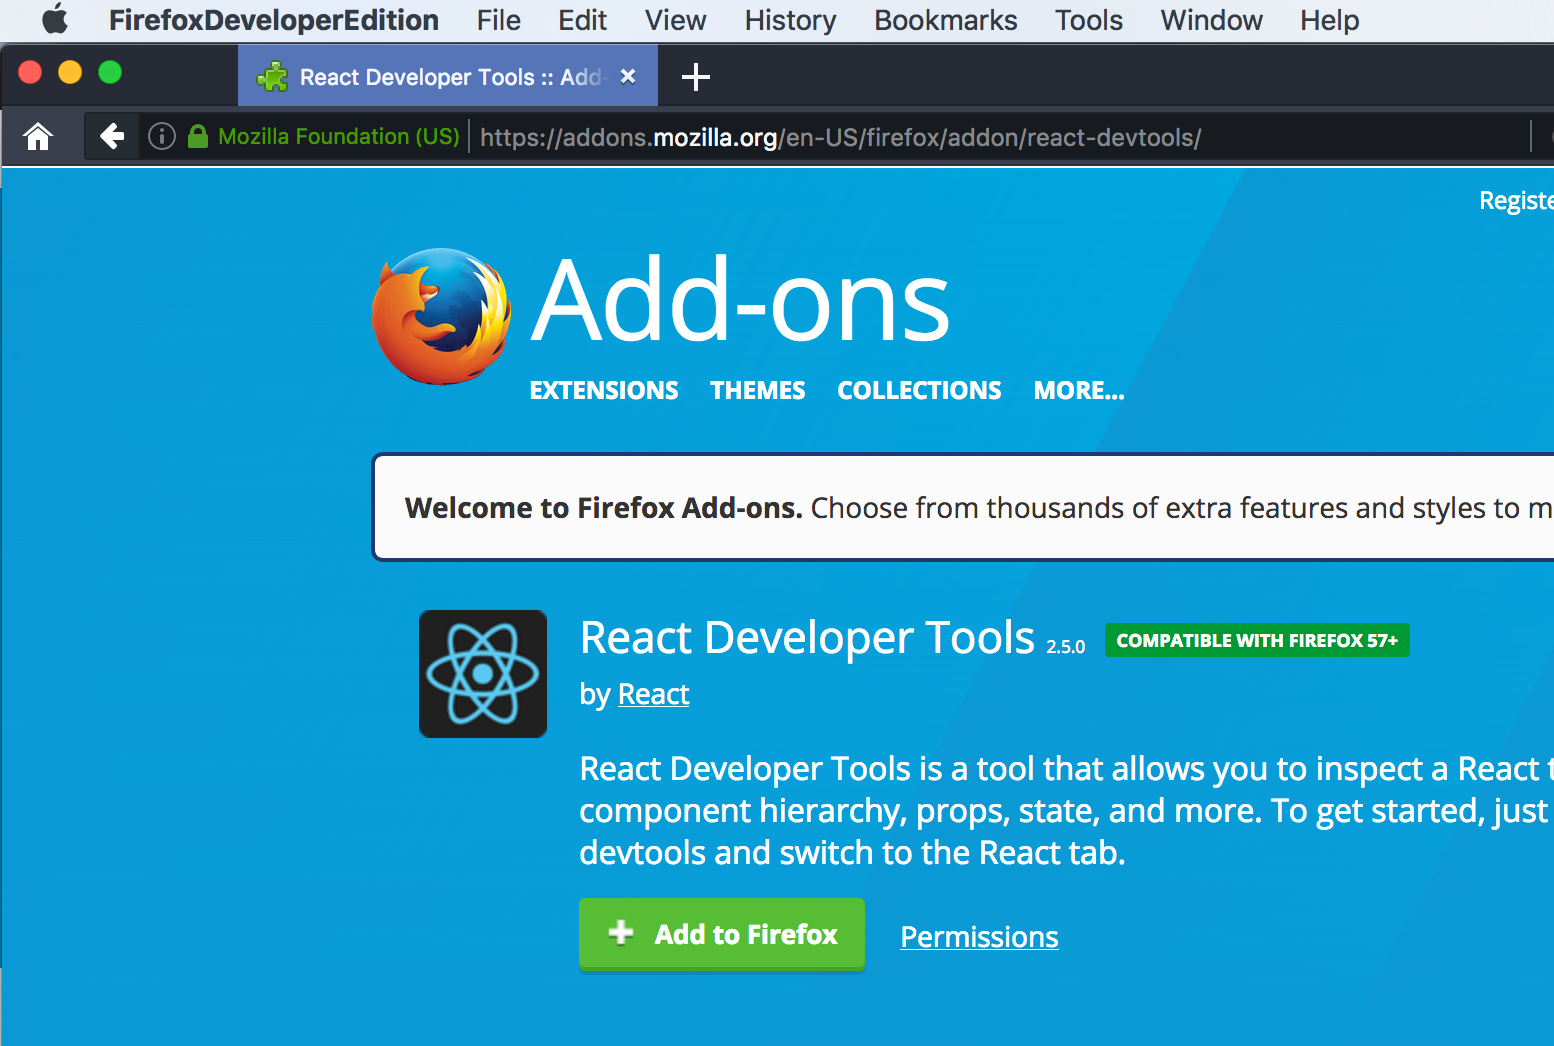 can't install react devtool extension with firefox developer